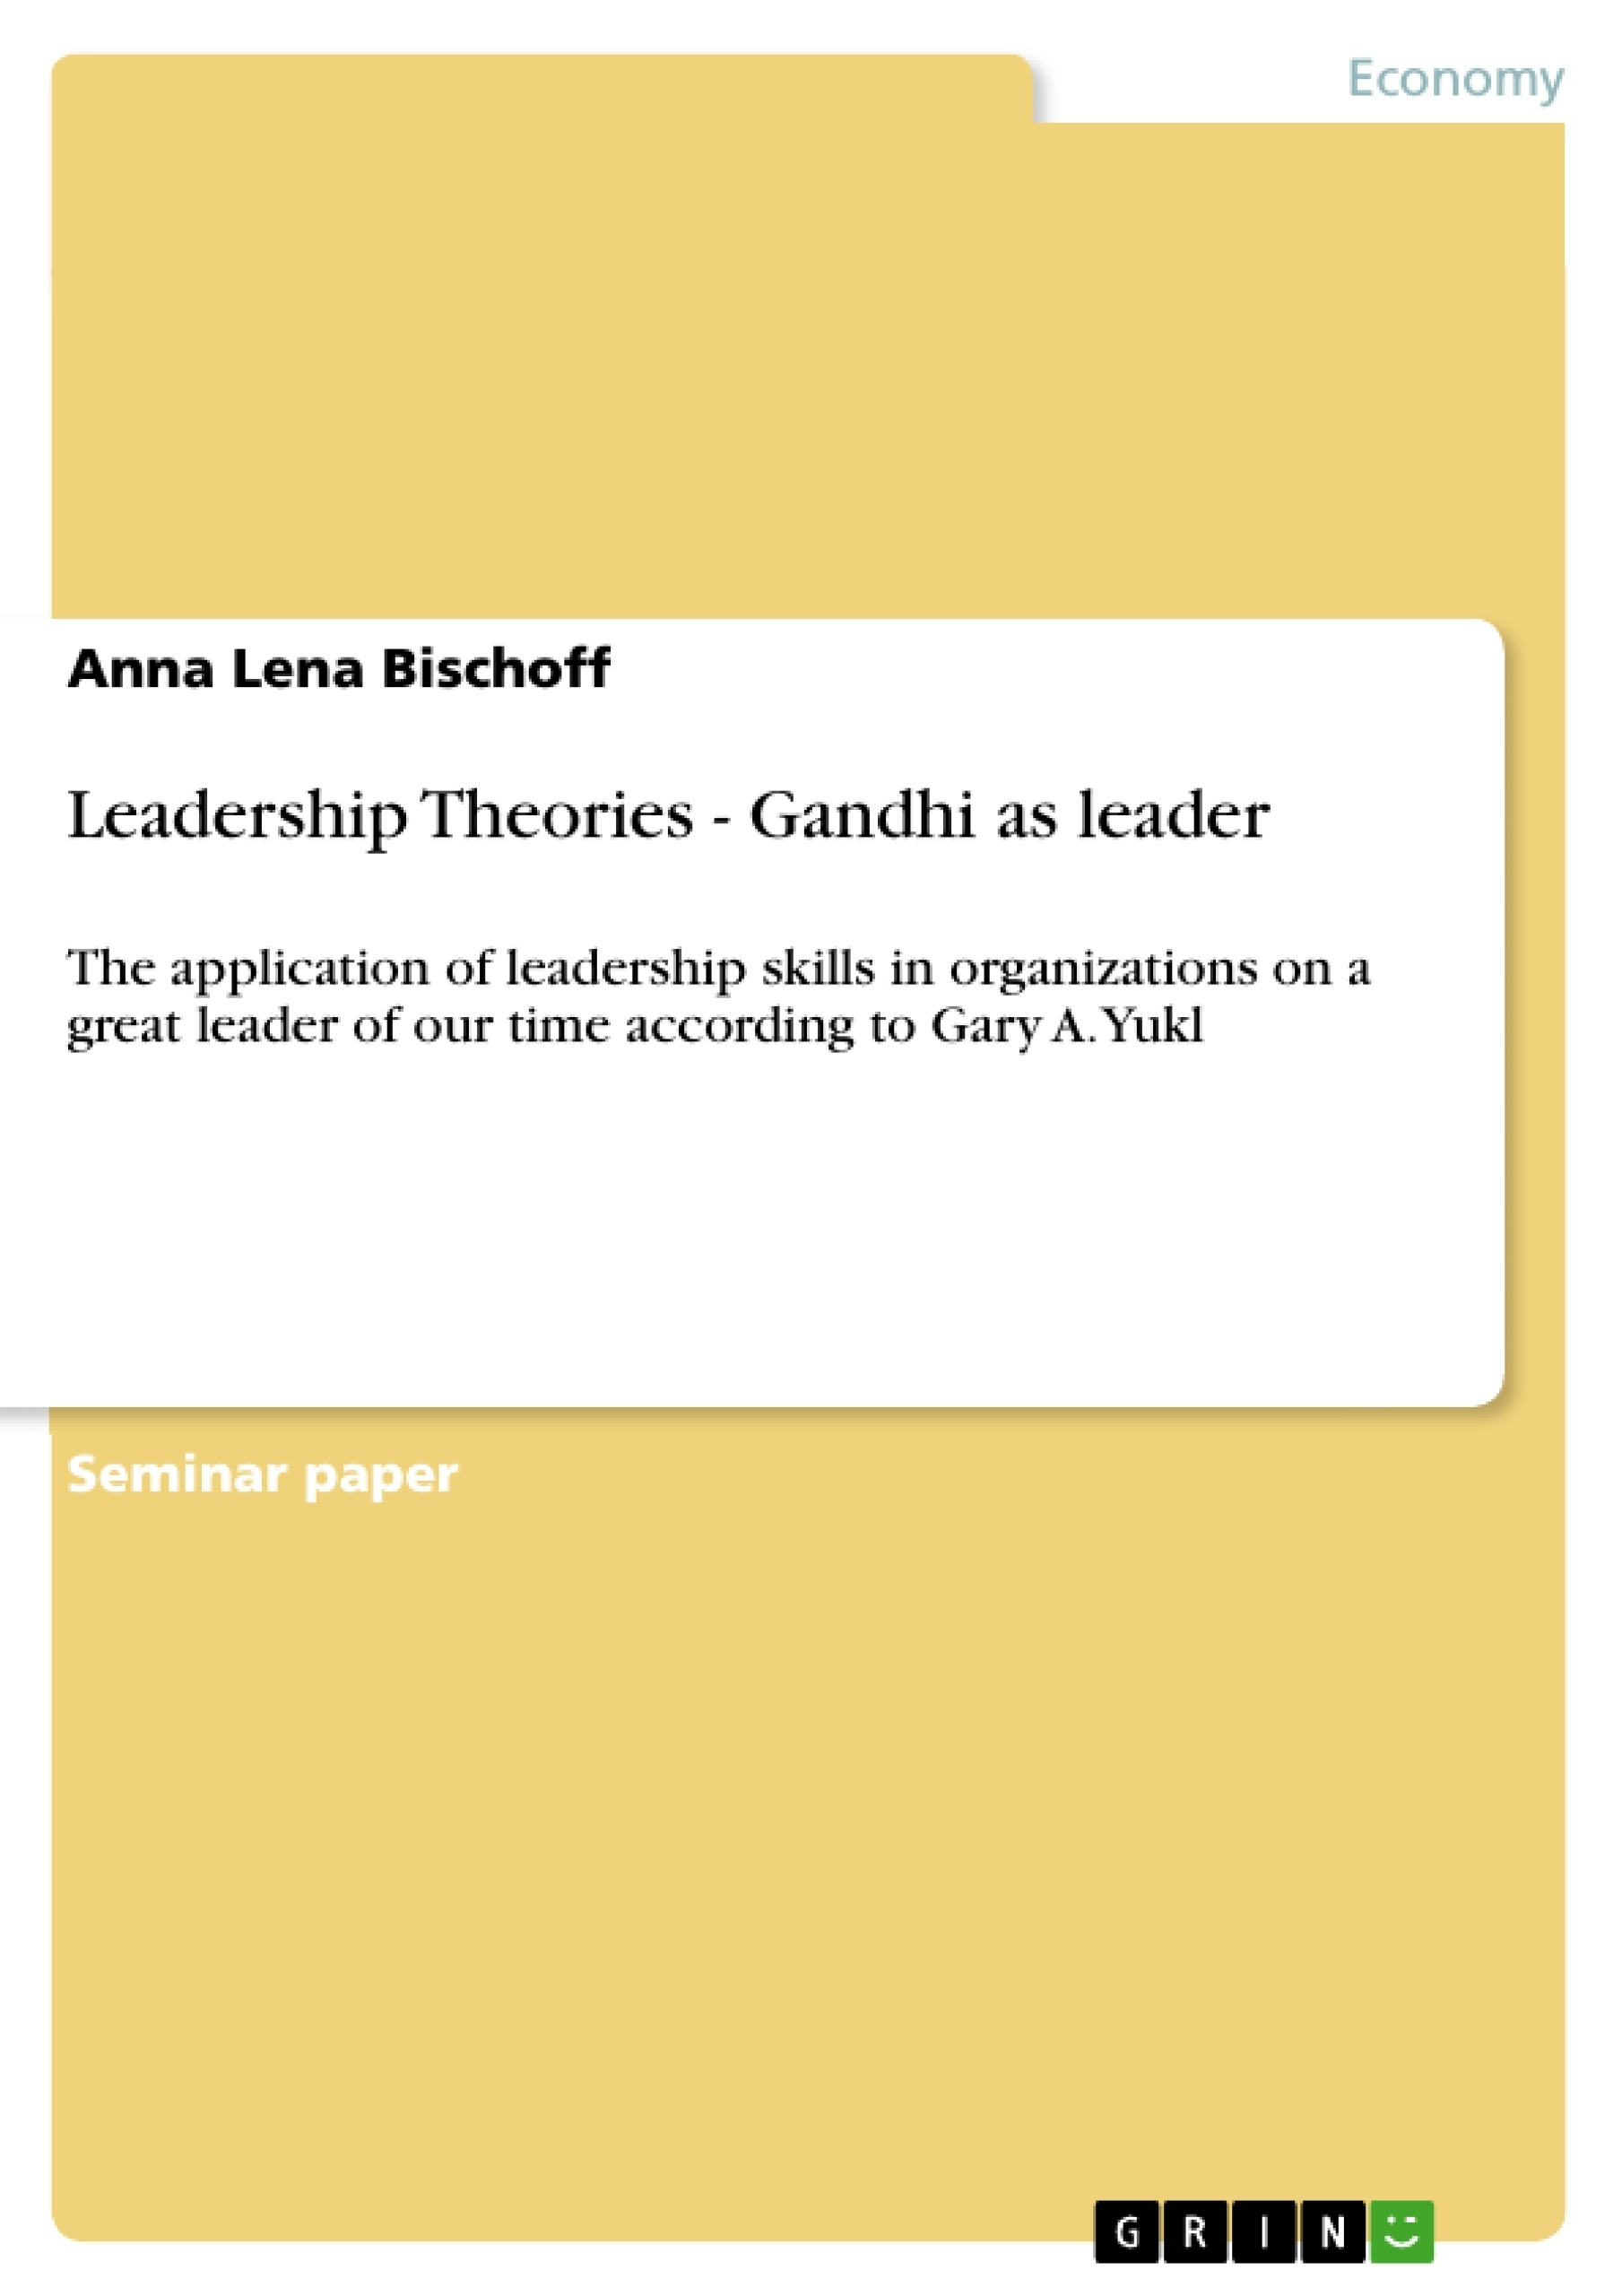 leadership theories gandhi as leader publish your master s leadership theories gandhi as leader publish your master s thesis bachelor s thesis essay or term paper